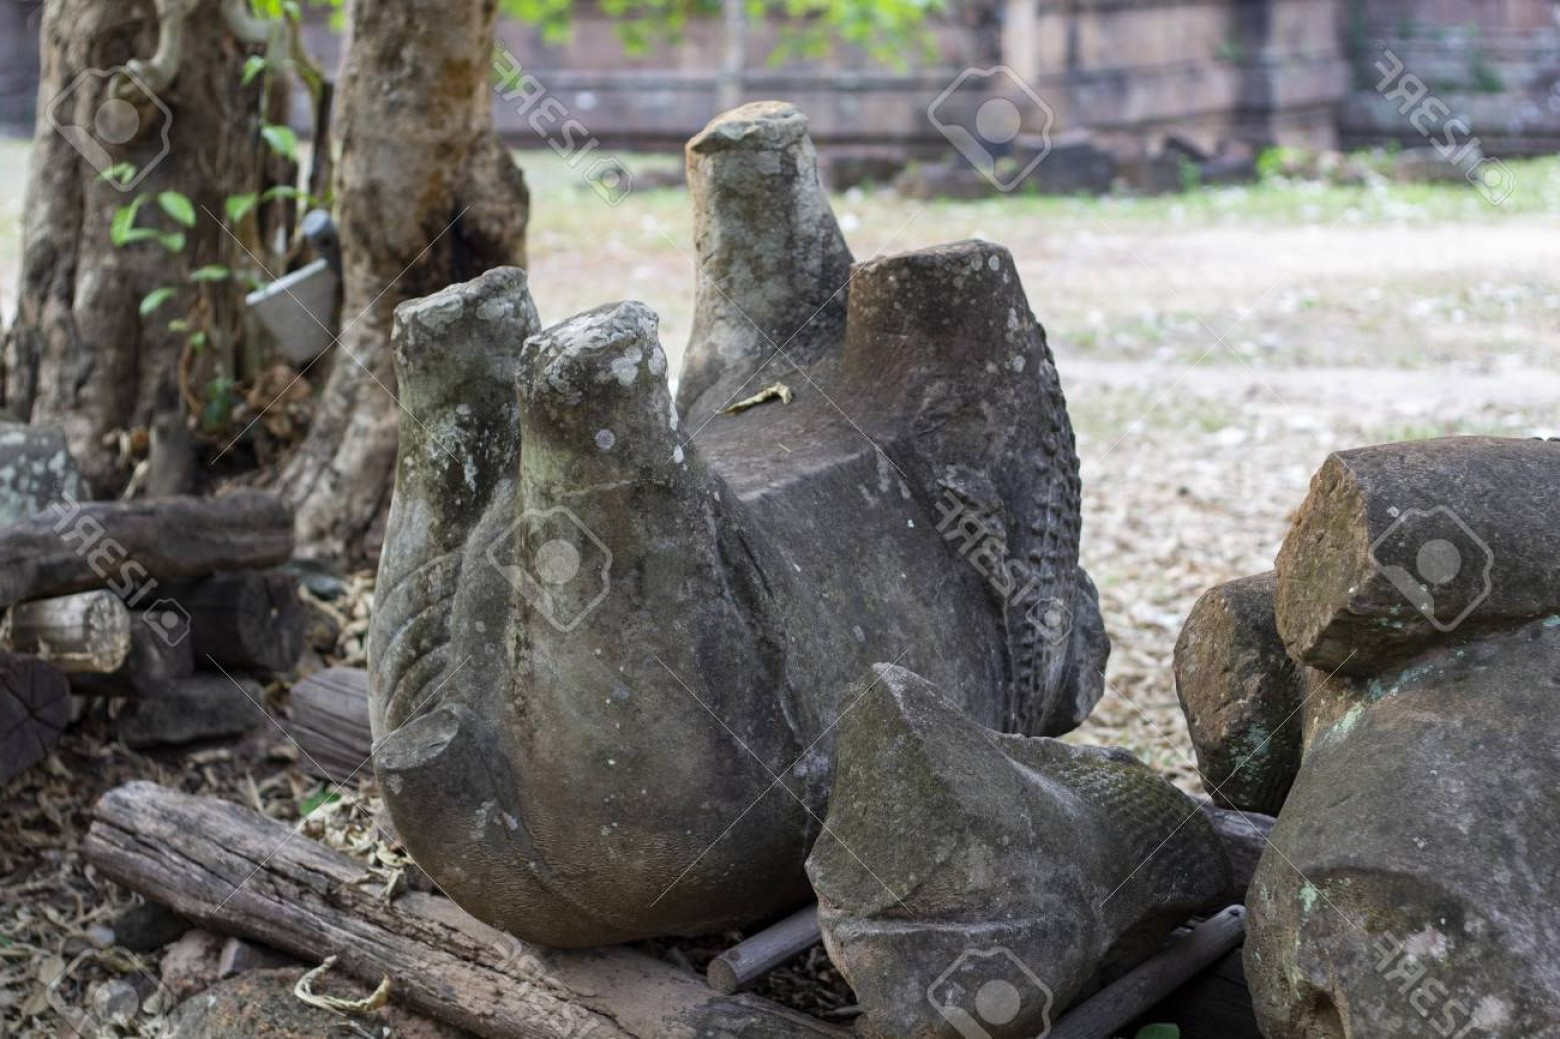 Ancient Jungle Statue Vector Images: Photoancient Stone Ruin In Angkor Wat Temple Animal Stone Statue Ruin On Ground Khmer Heritage Temple Rui